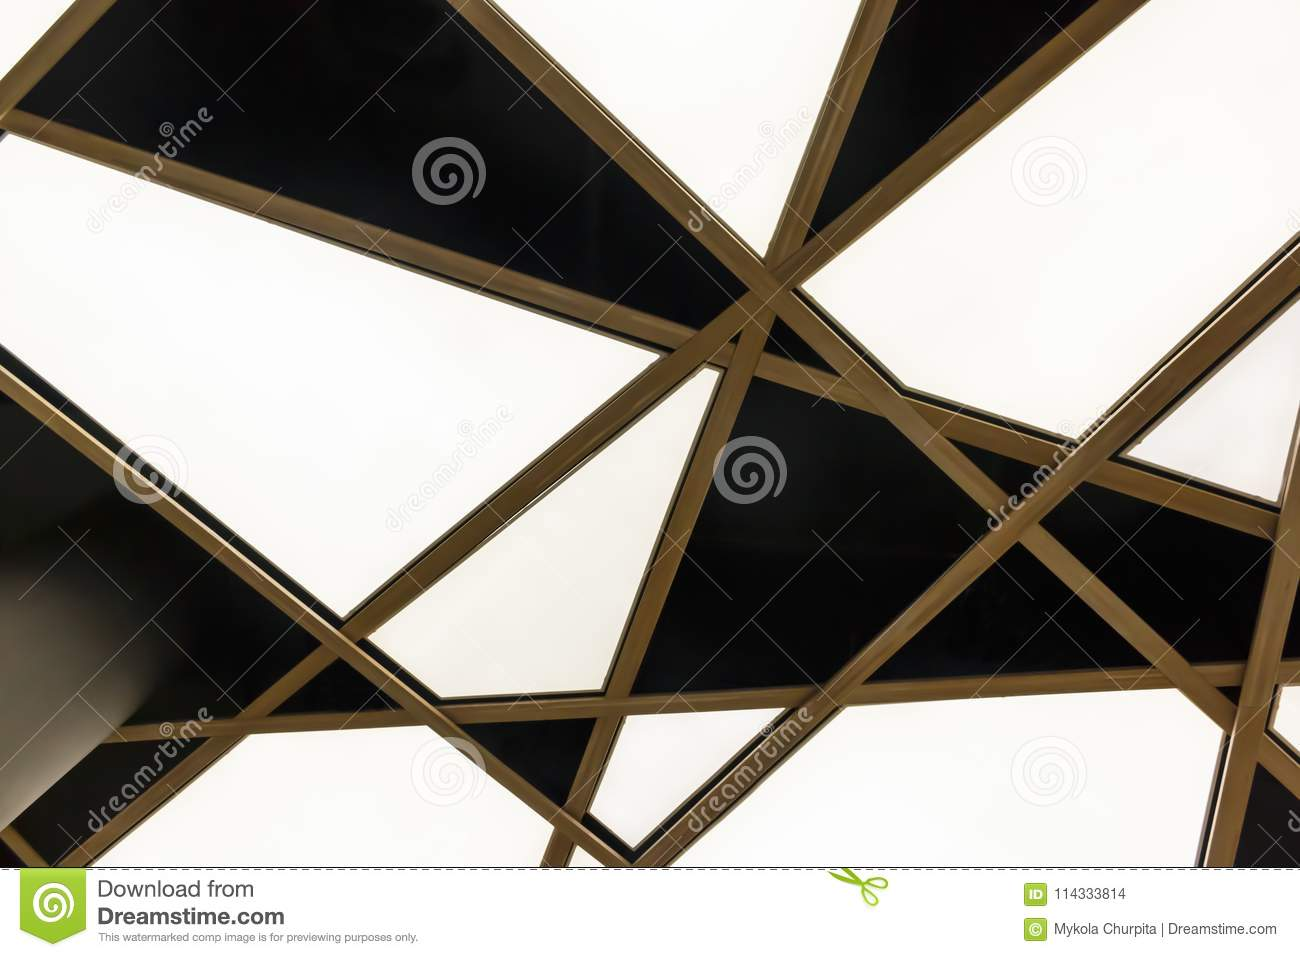 The bottom view of the modern white triangular ceiling